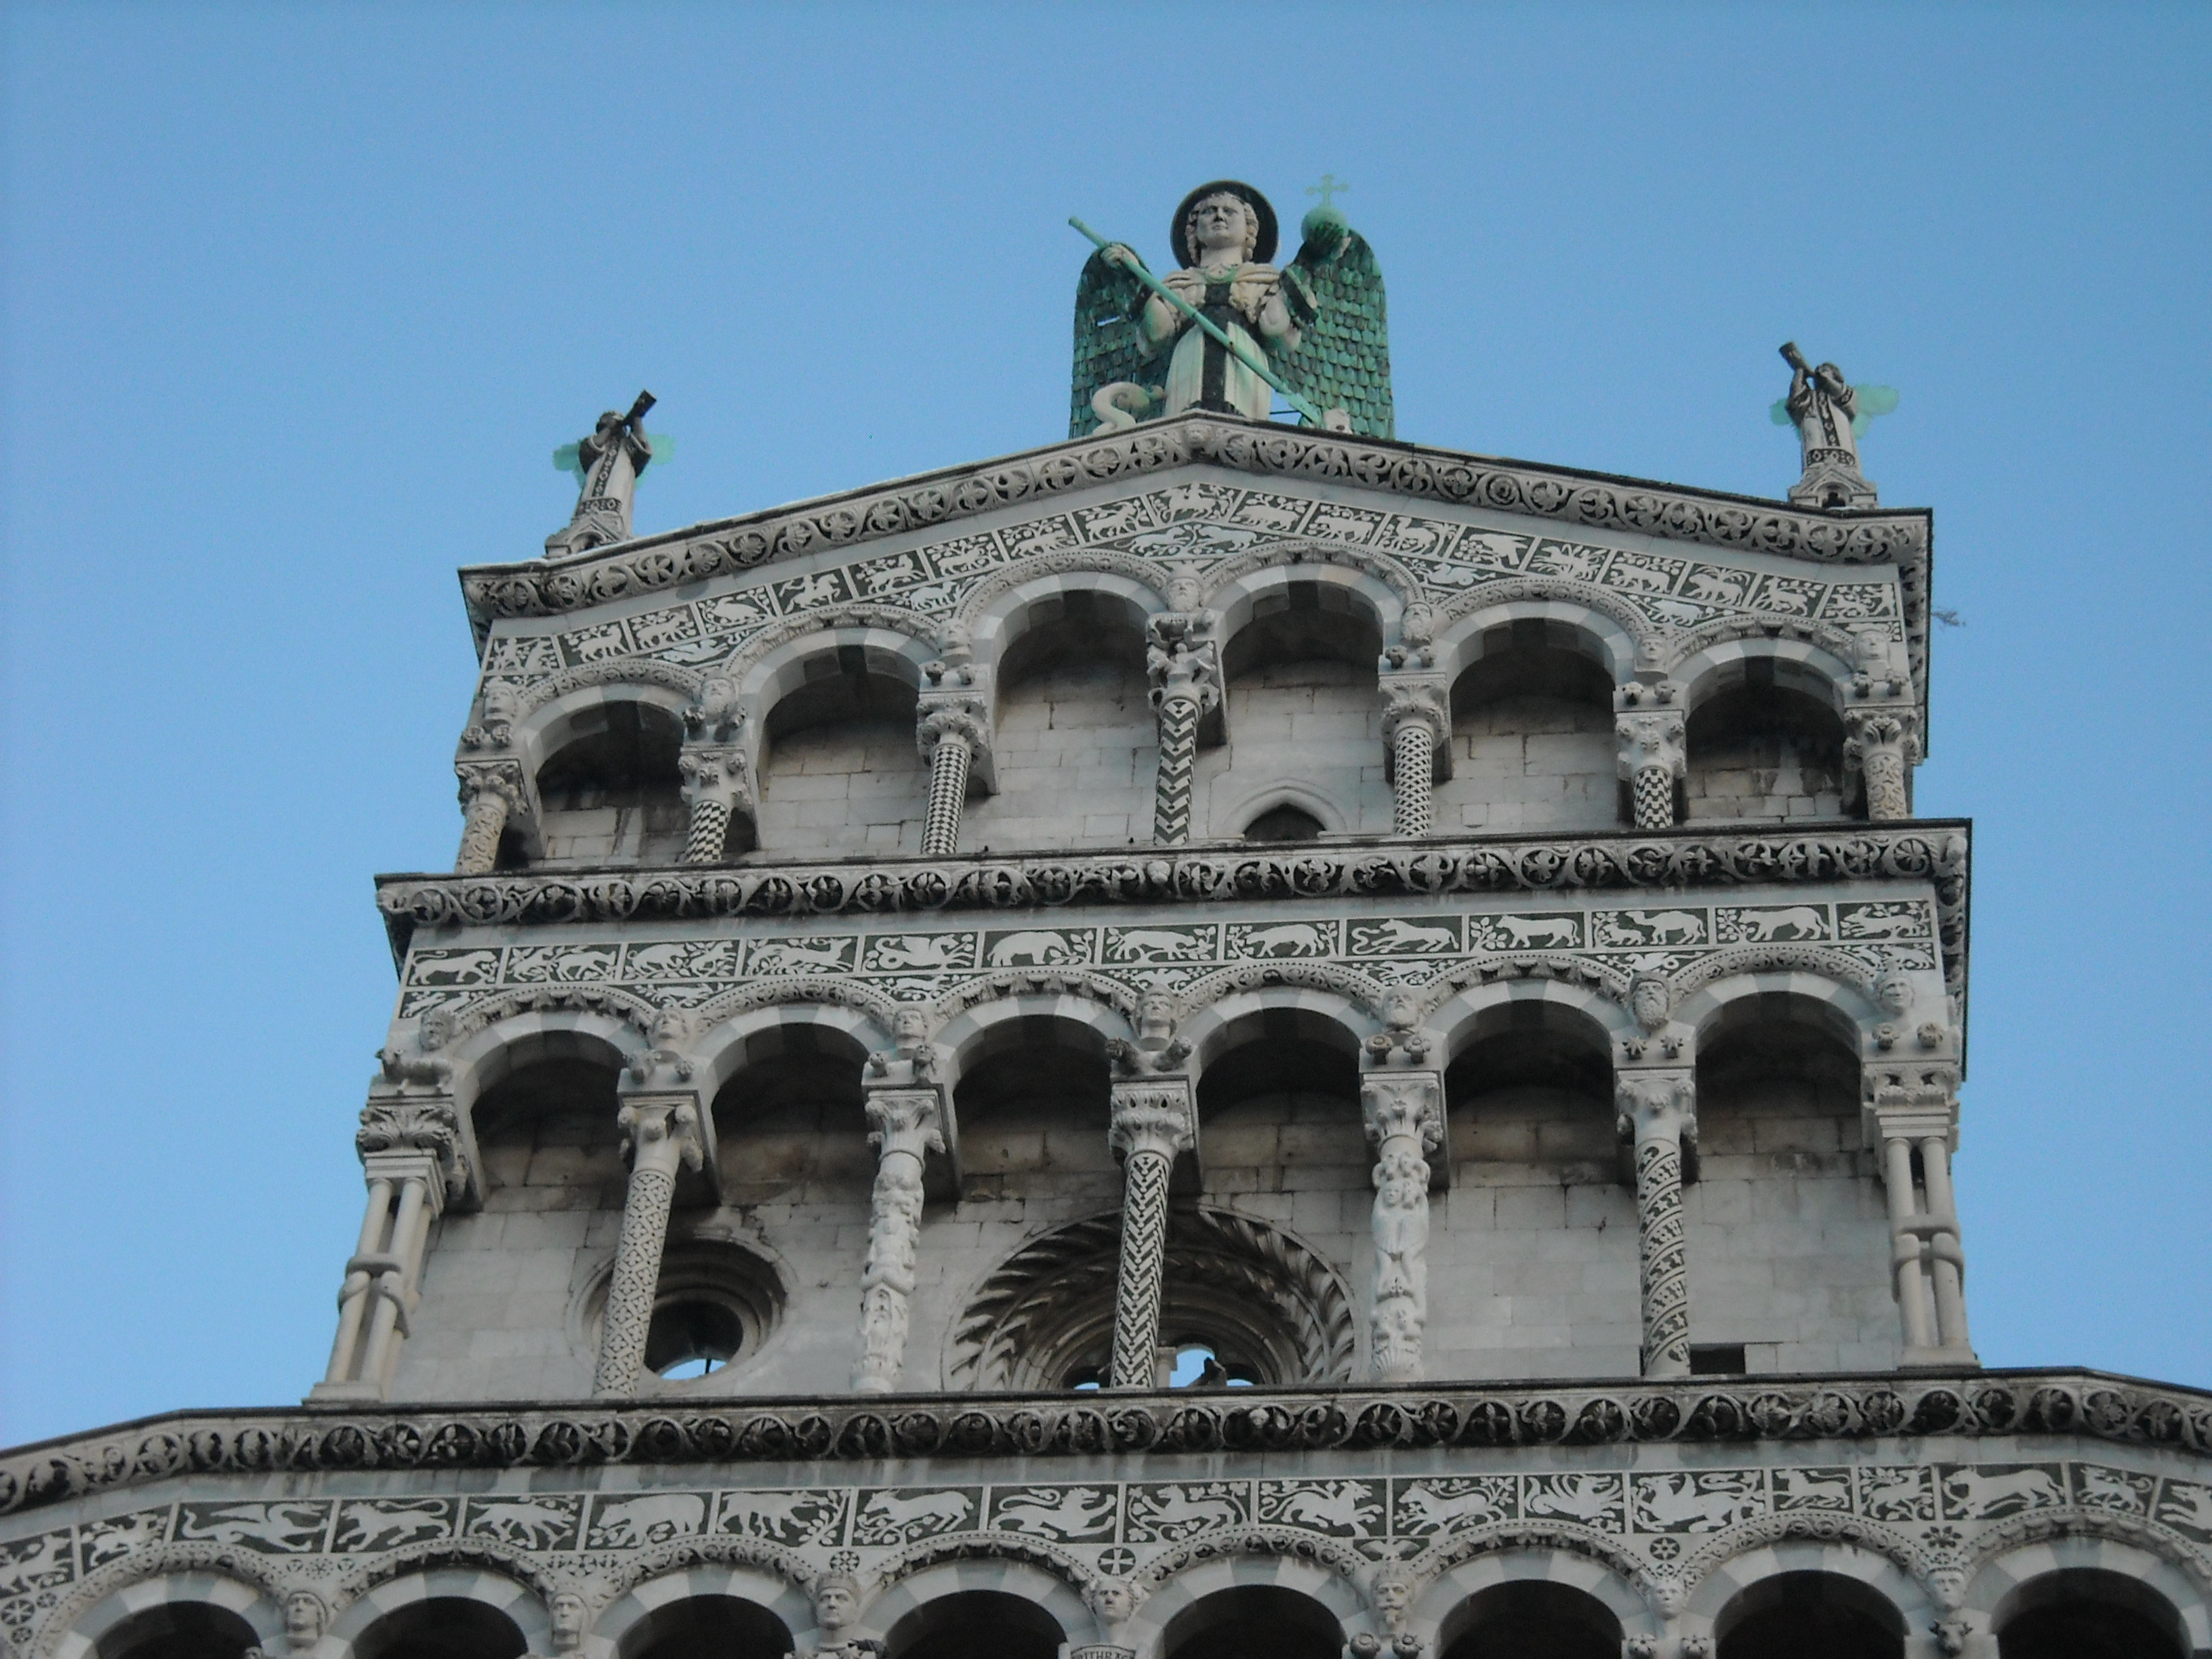 lucca dating site Lucca a street, pelleria a number, 25 (venticinque) a building, dating back to 1630 25 (venticinque) is the number to remember for your stay in lucca eight.